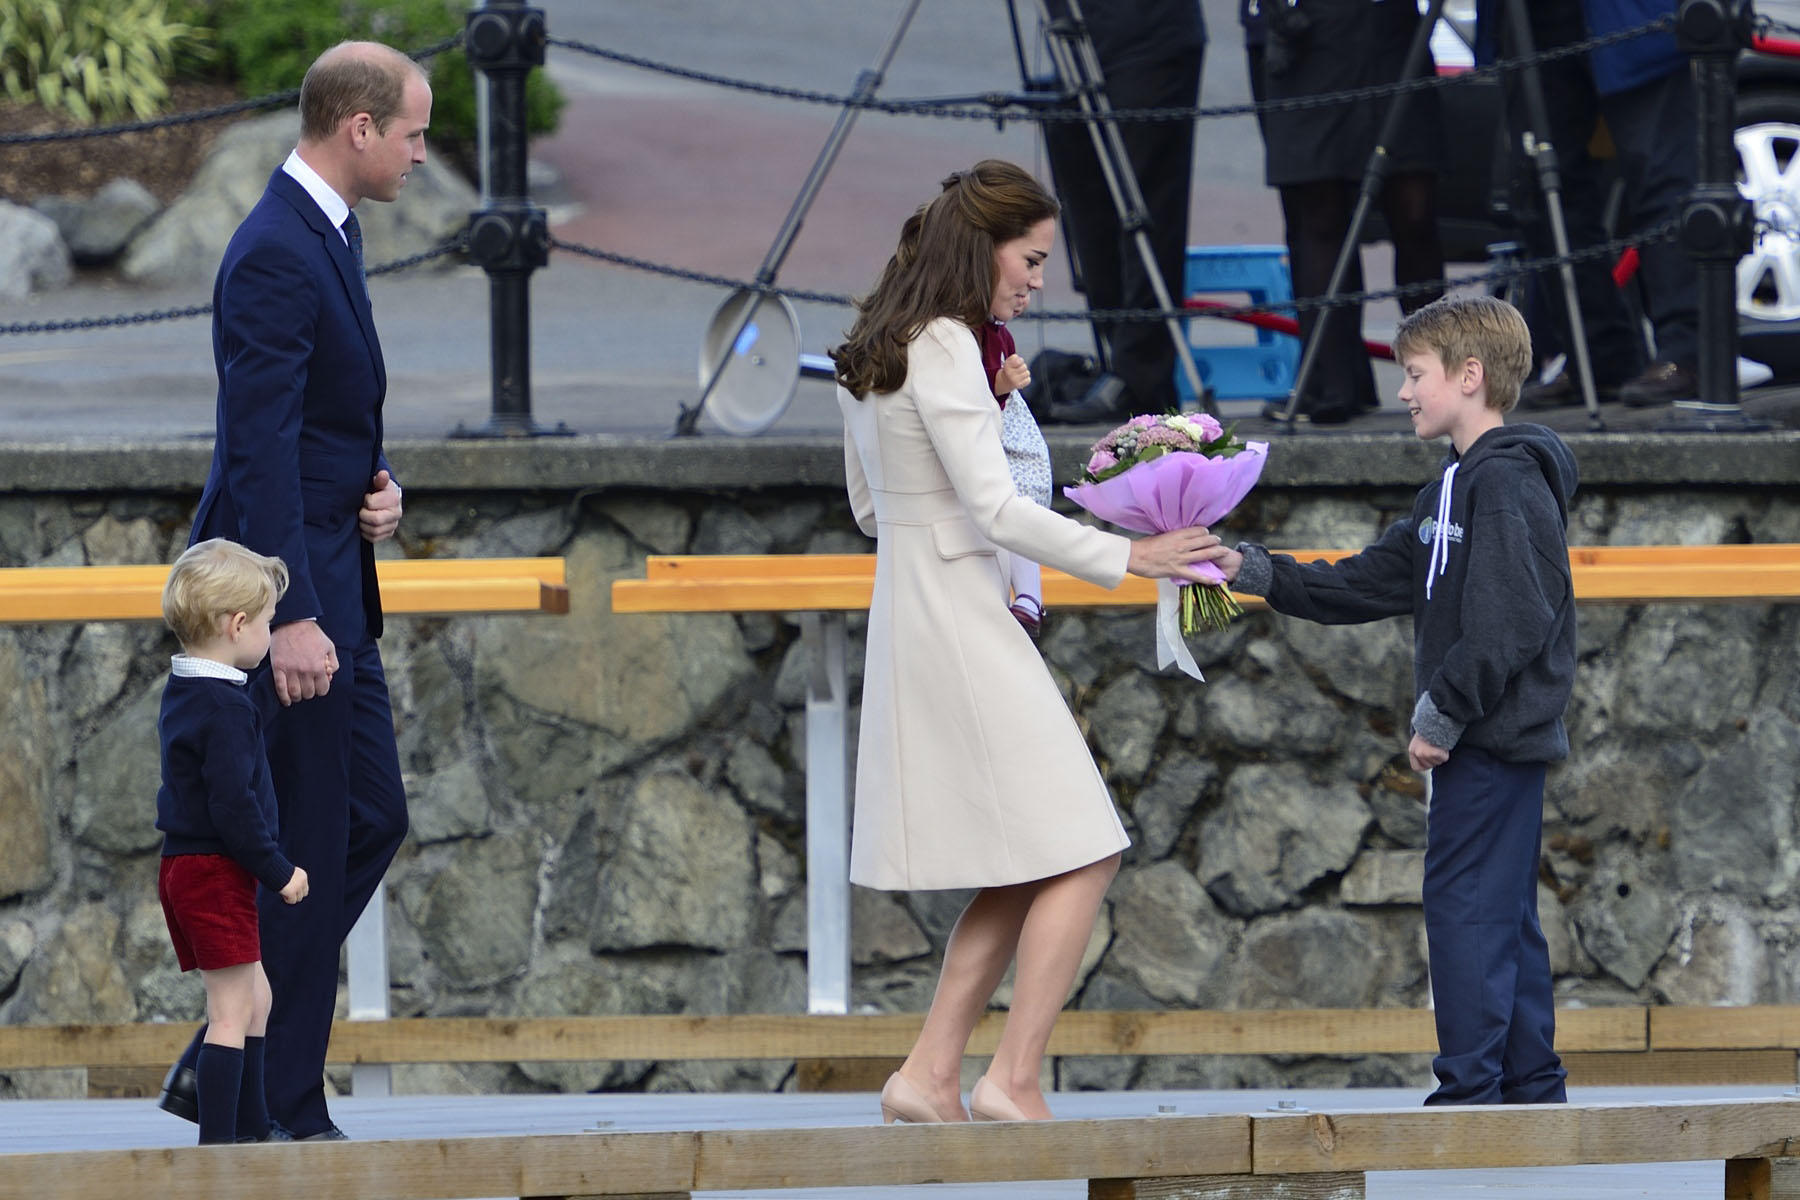 The Duke and Duchess of Cambridge toured Canada from September 24 to October 1, 2016.